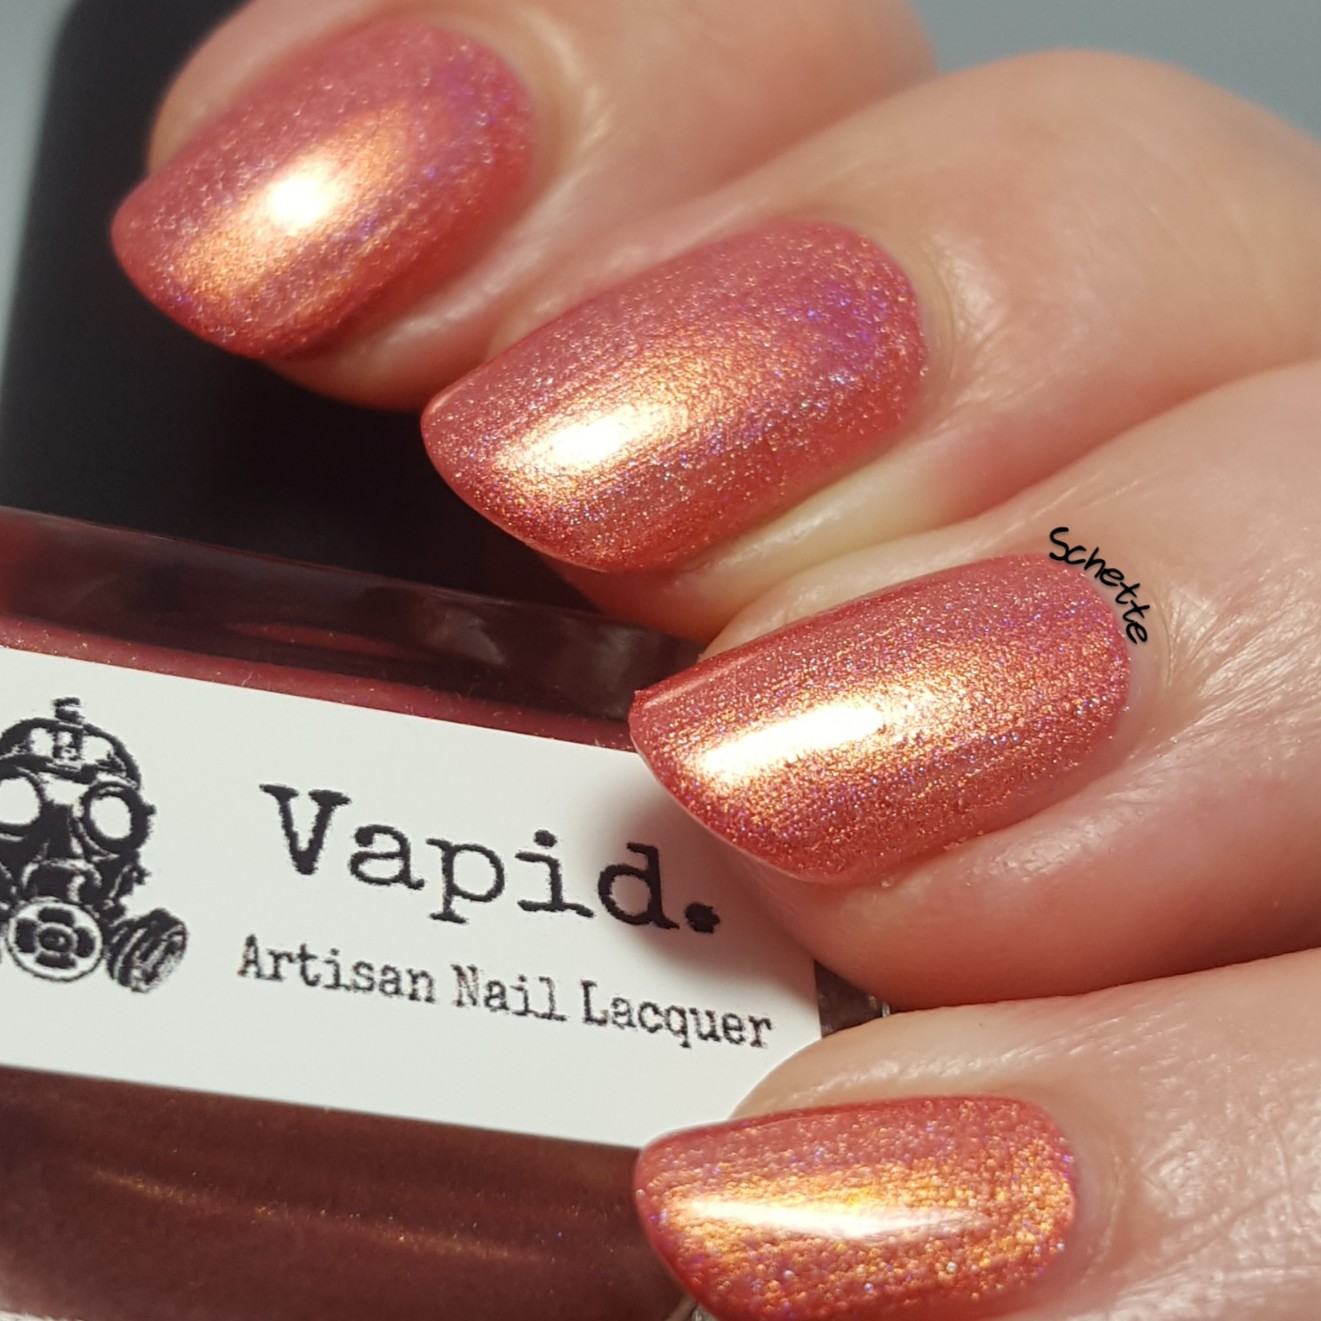 Vapid Lacquer - Dragon Tears